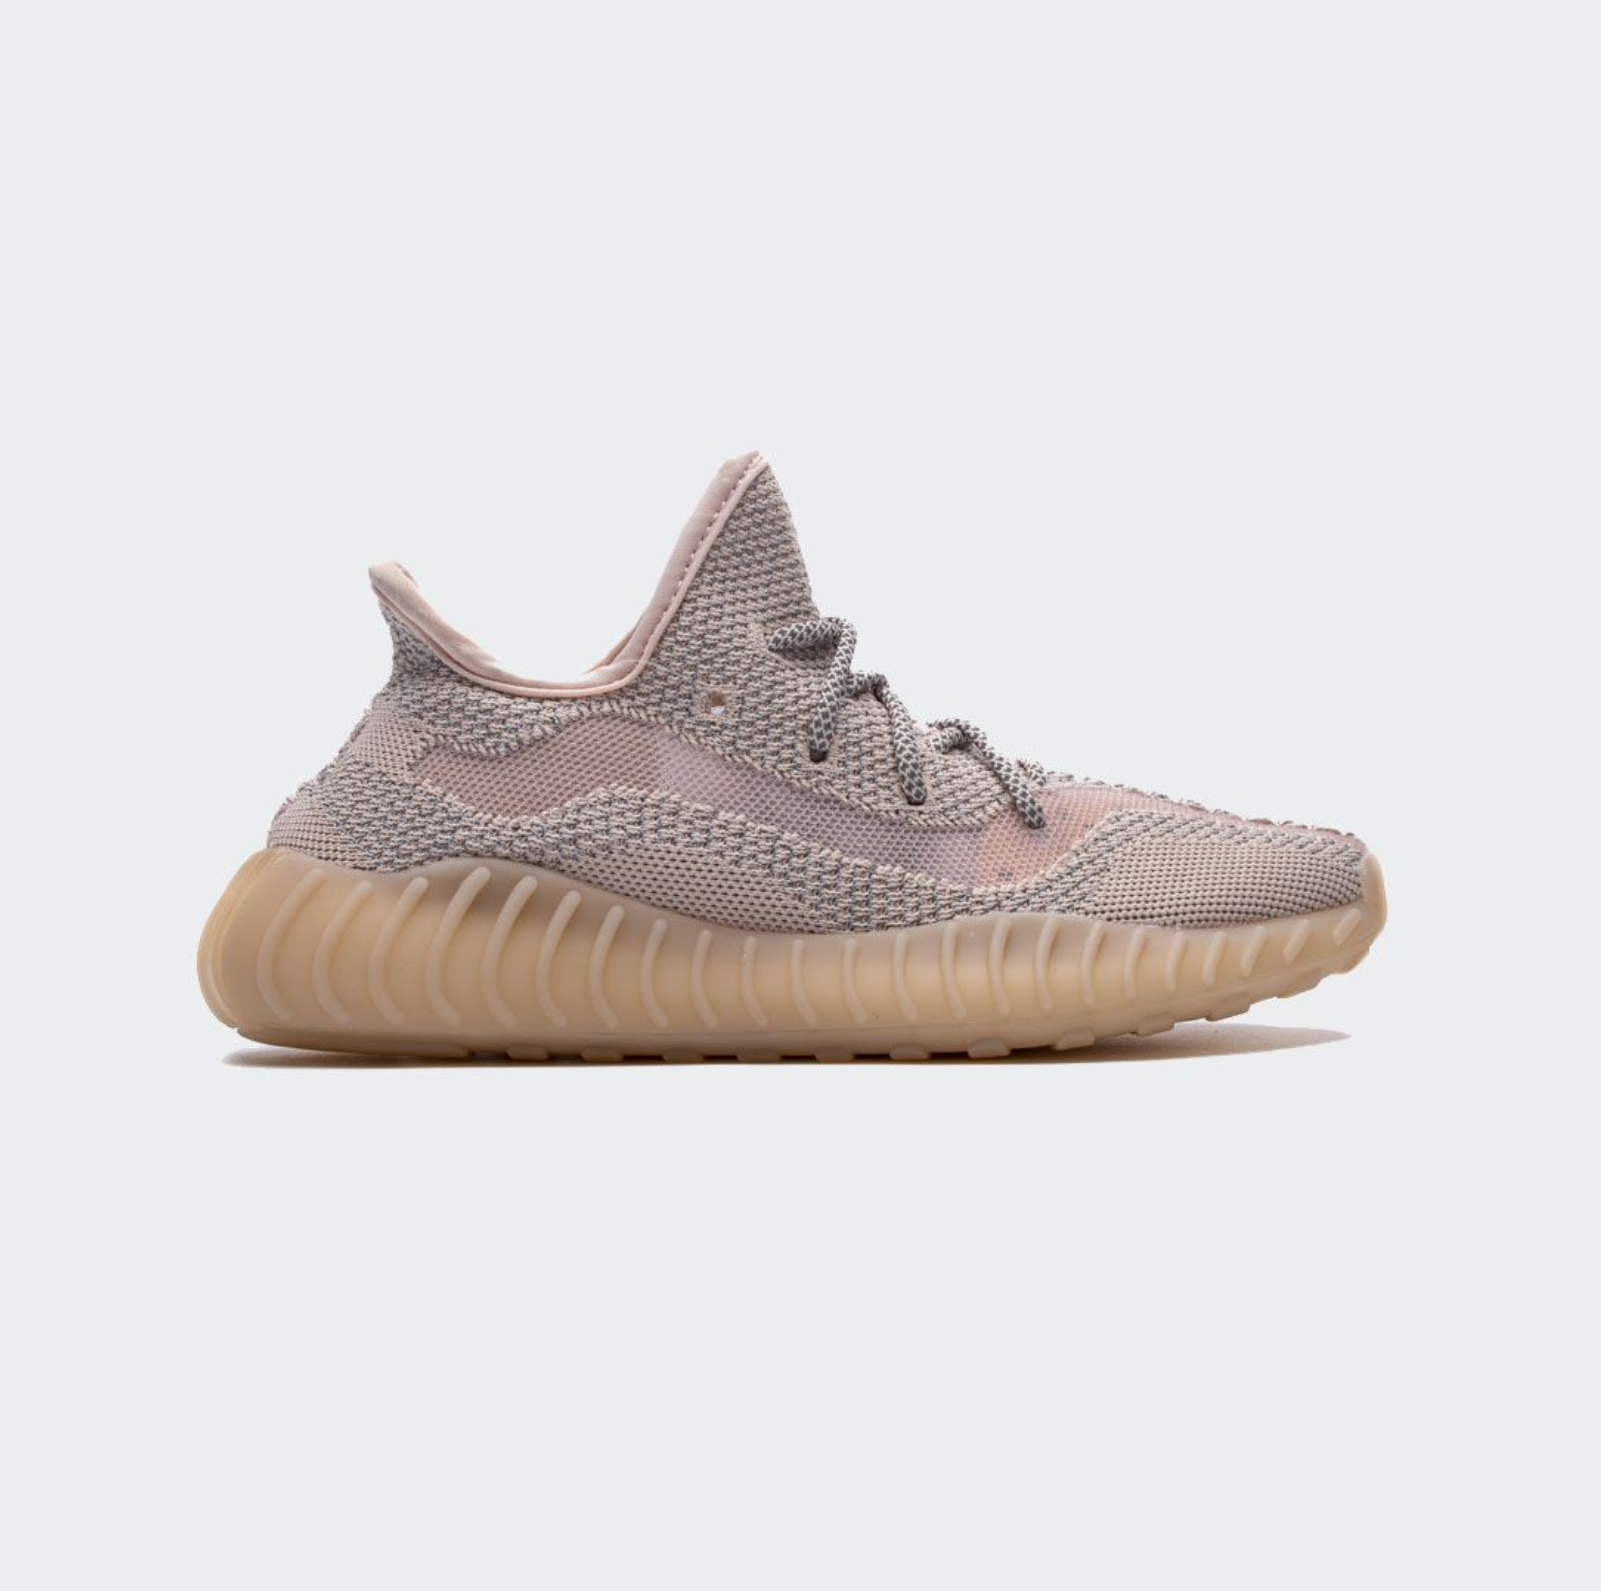 NEW ARRIVALS: ADIDAS YEEZY BOOST 350 V3 'SYNTH REFLECTIVE' FV5668